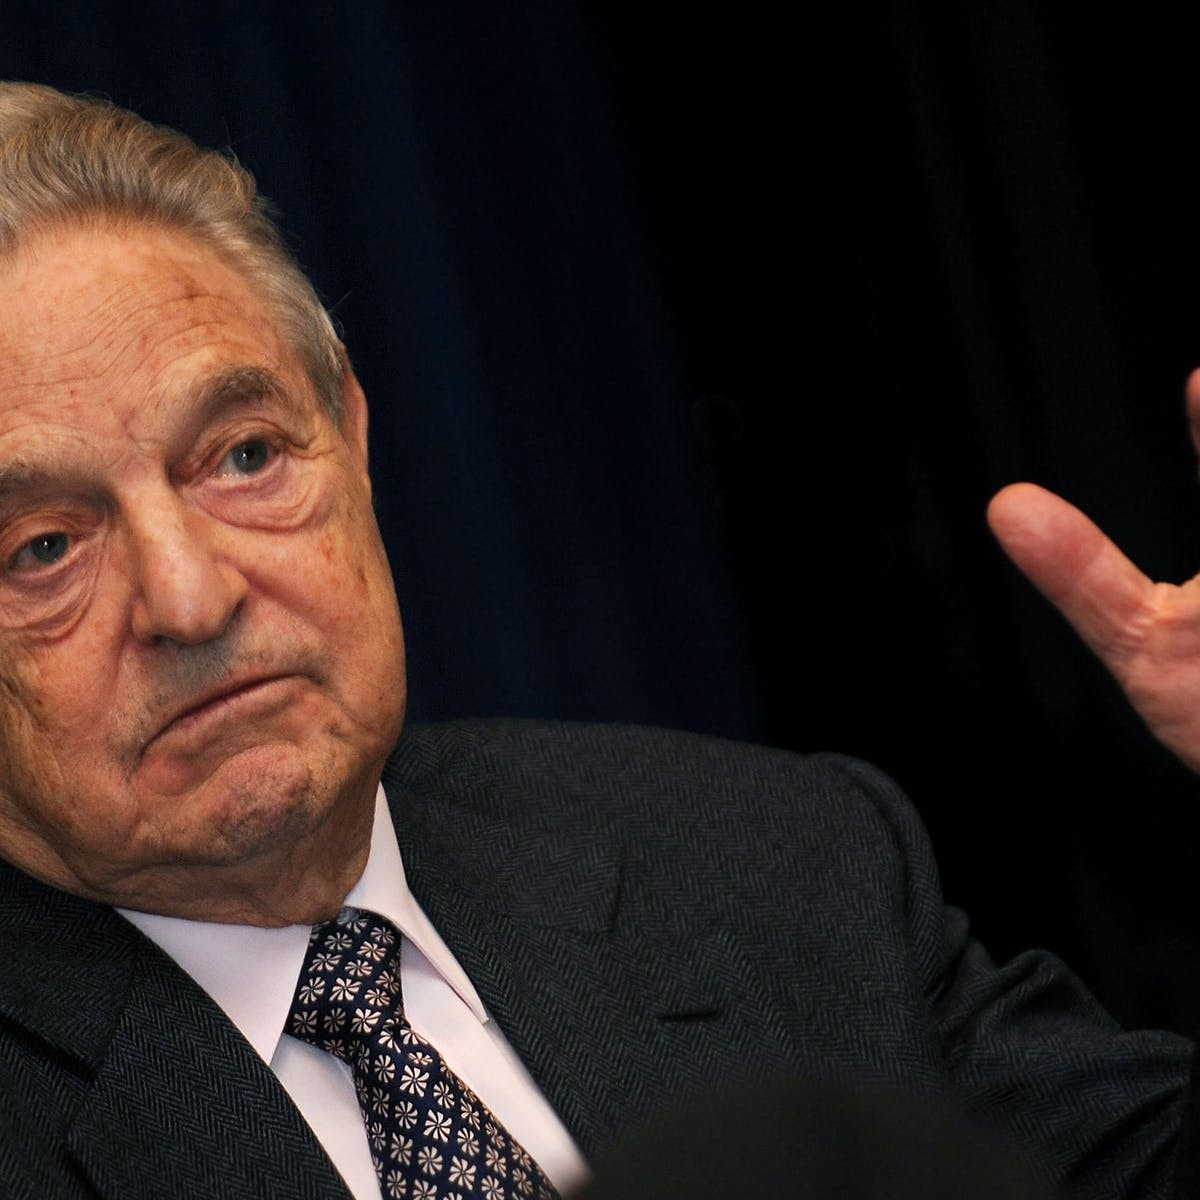 Open sesame: George Soros and the foundations for change